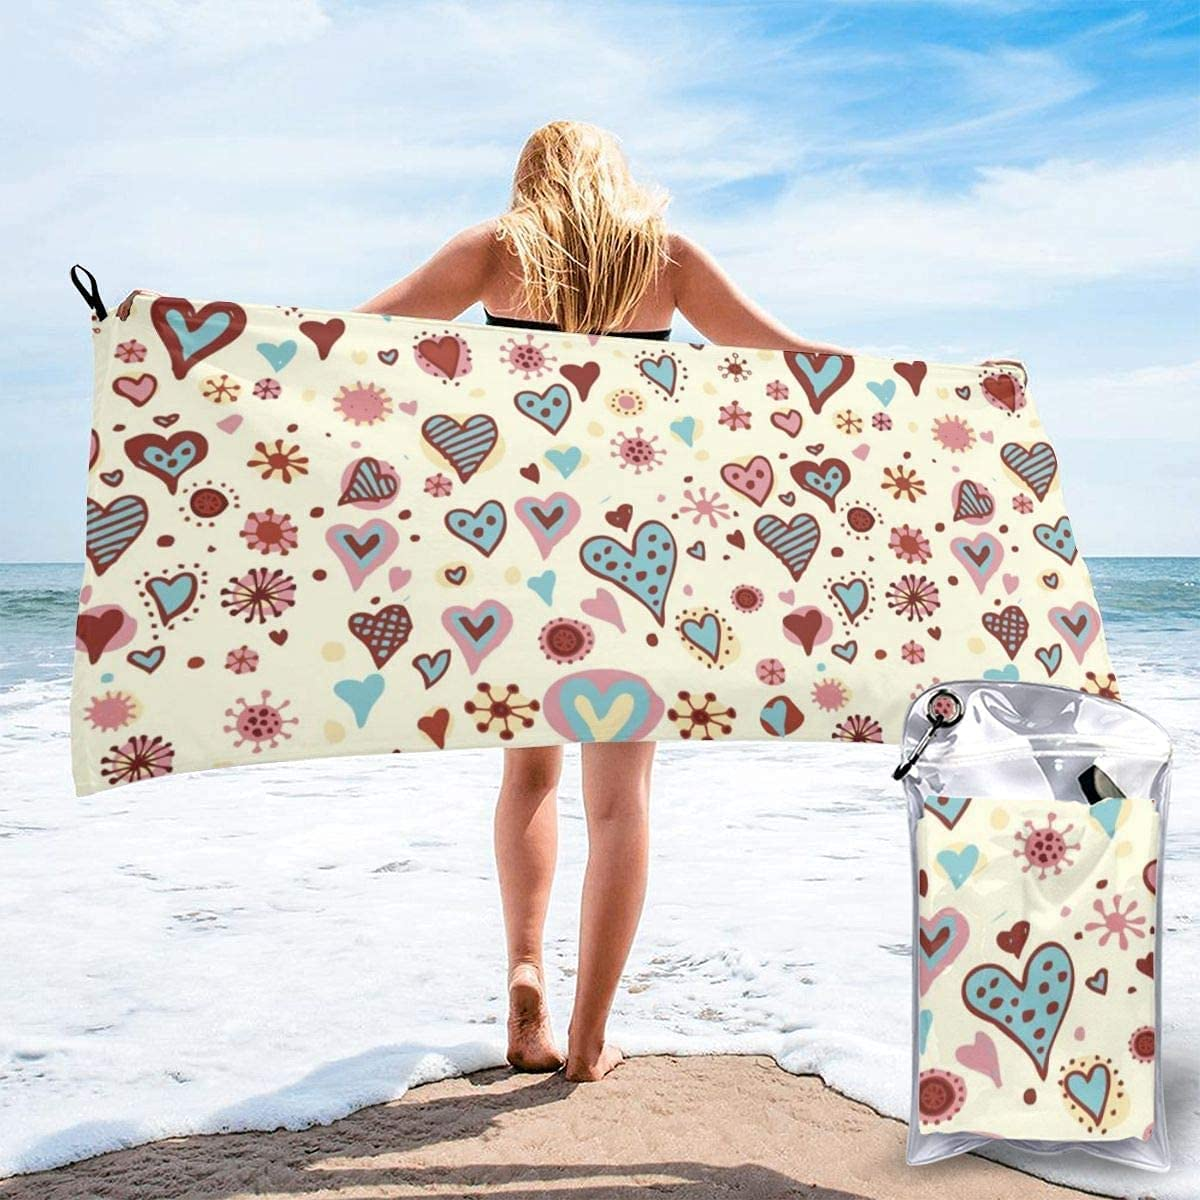 Quantity limited Wild Deer Microfiber Beach Towel T Super Absorbent Drying Mail order Quick